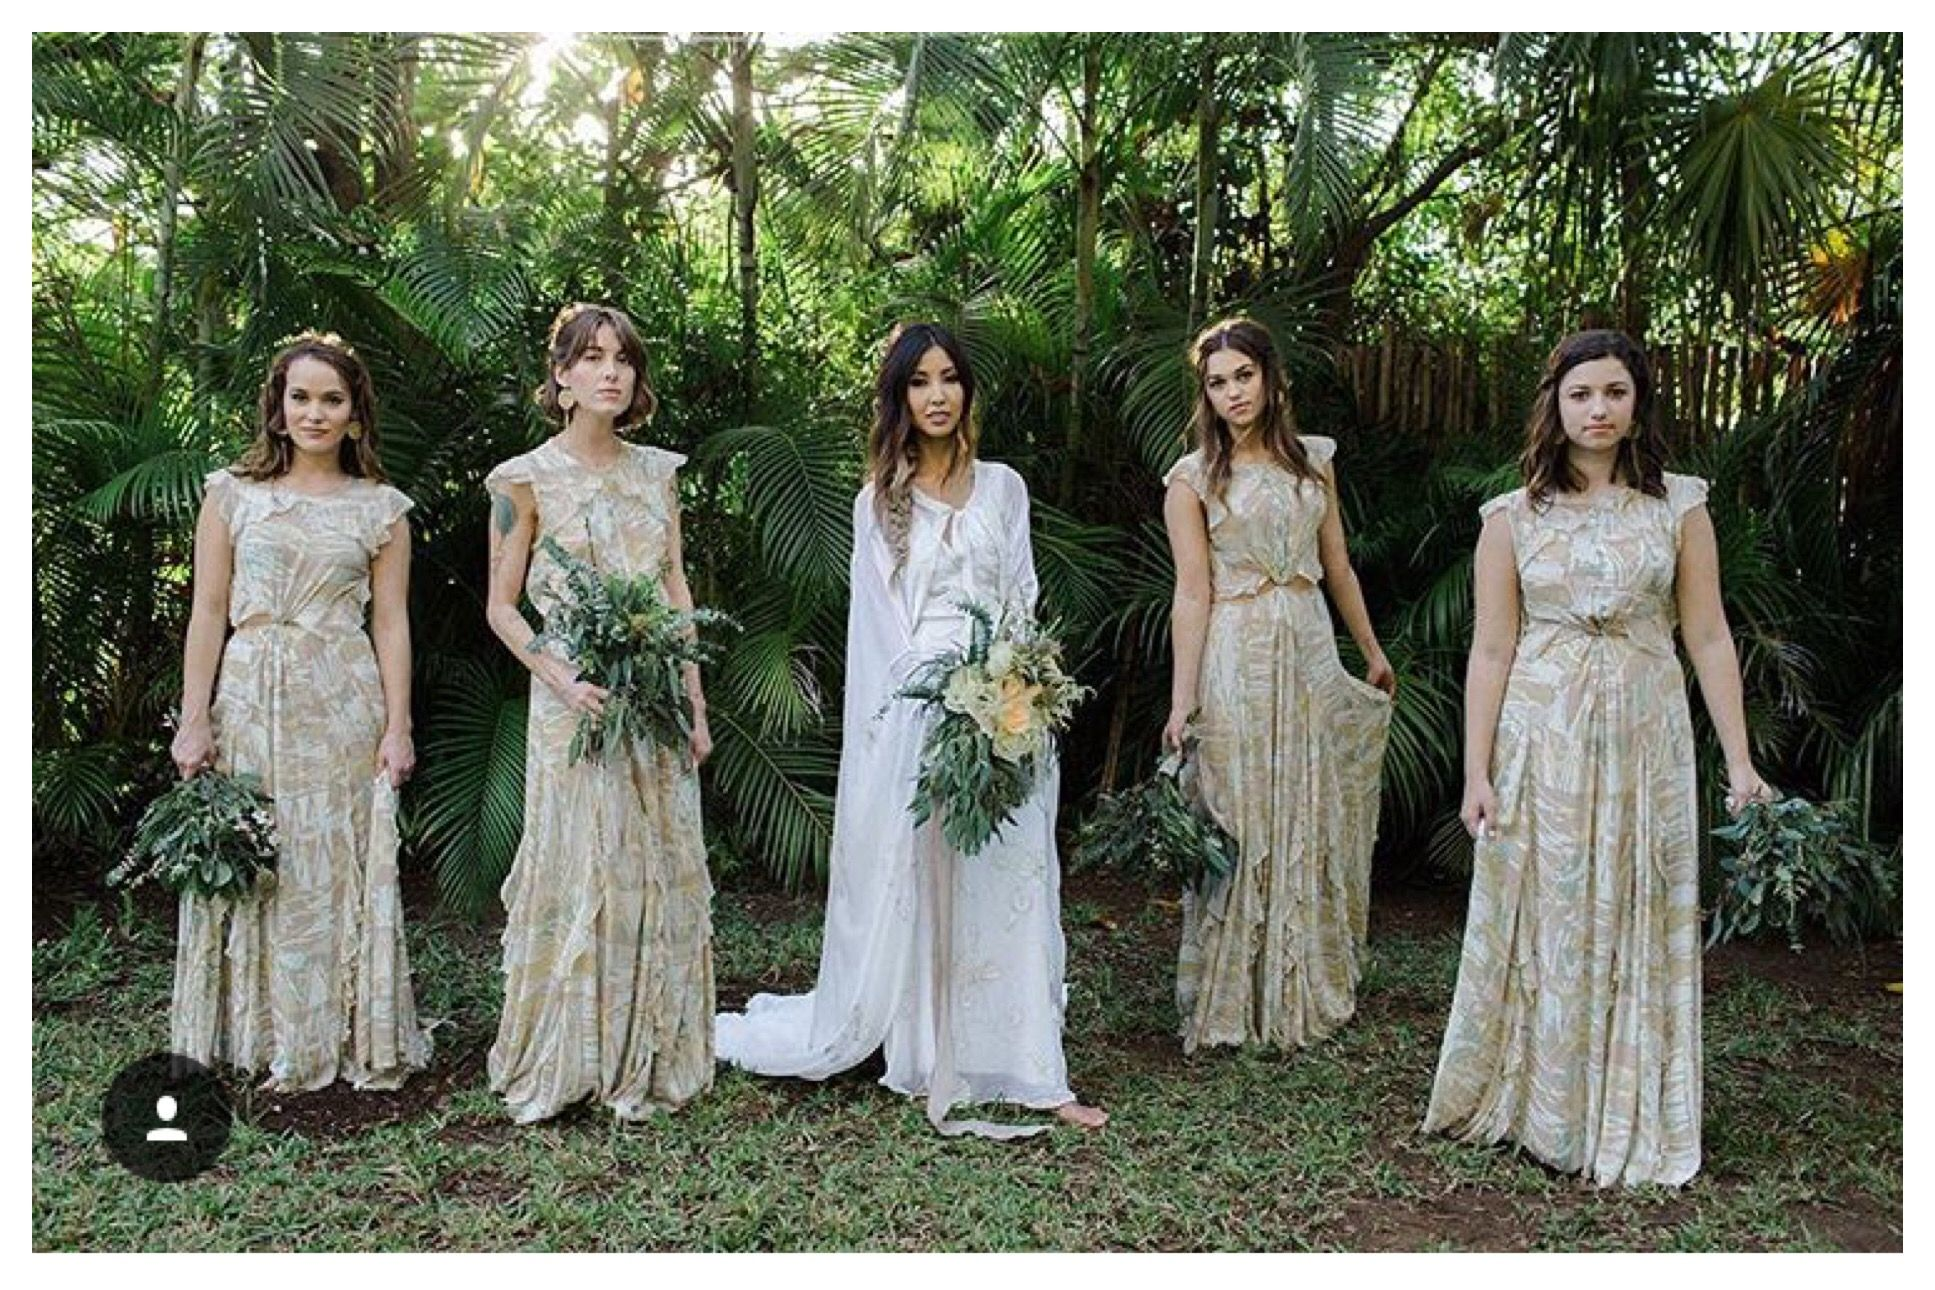 Pin By Jessica On Pictures Rebecca Robertson Wedding Wedding Wedding Dresses